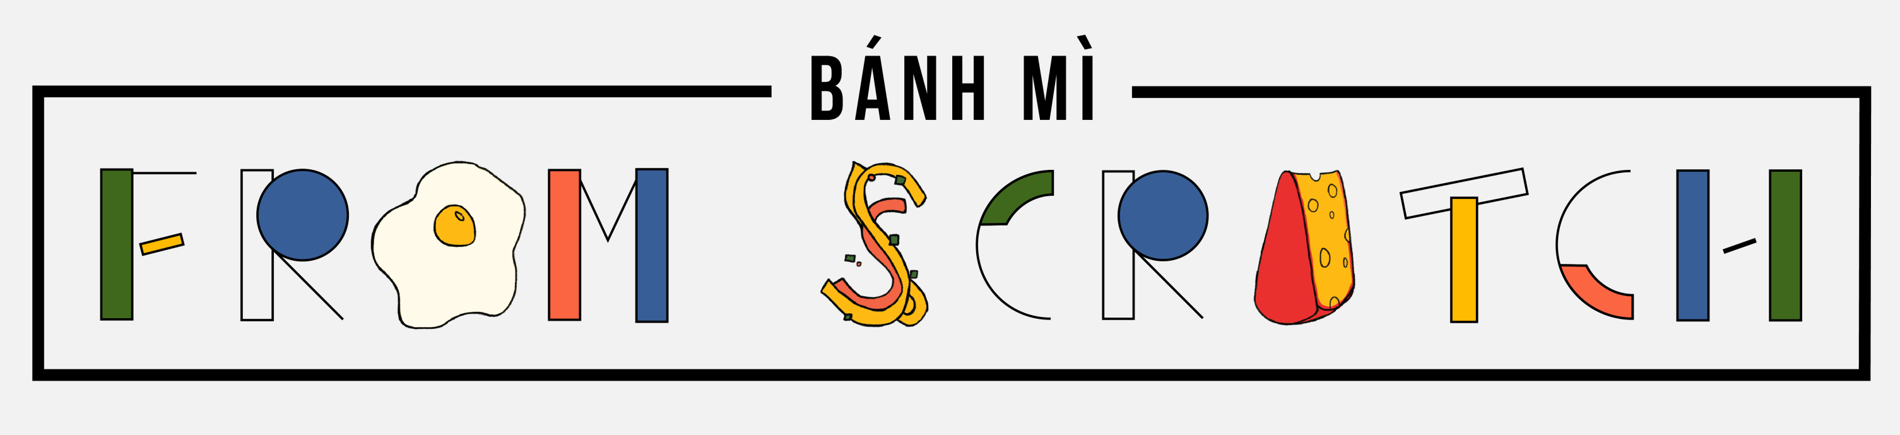 From Scratch: Bánh Mì, a symbol of culture and possibilities